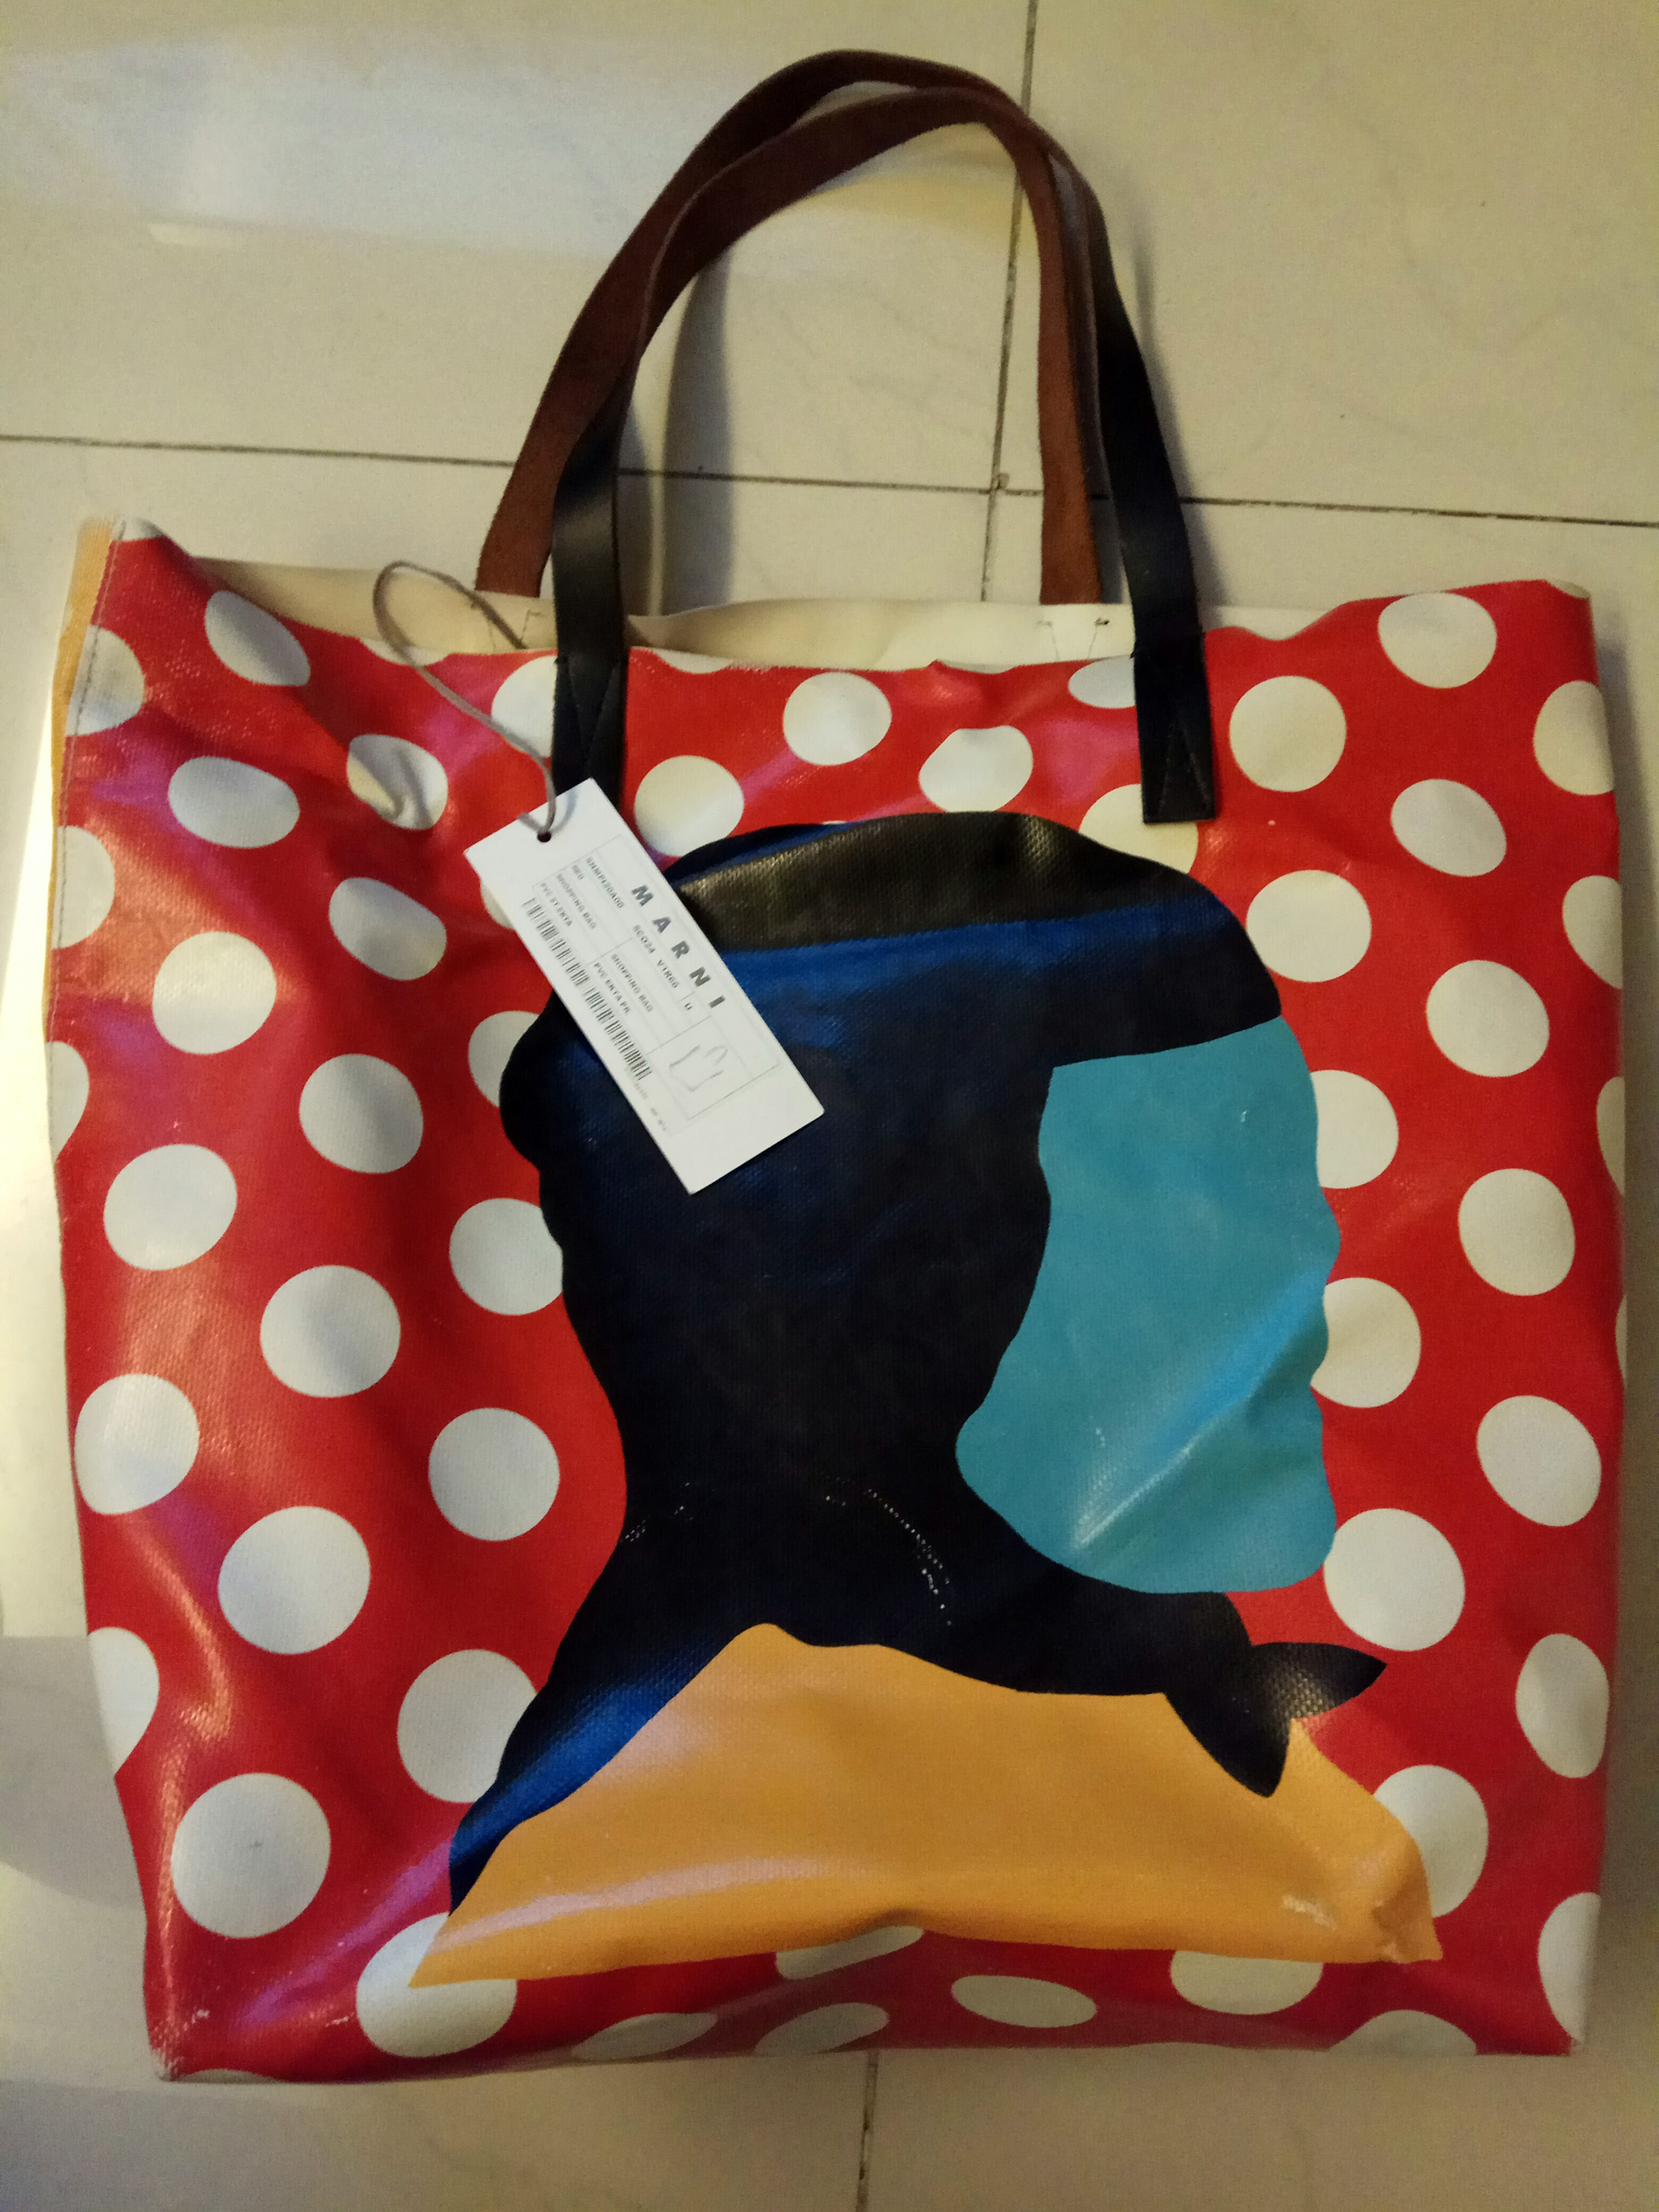 3bf2987d37 Marni EKTA Print Shopping Tote Bag